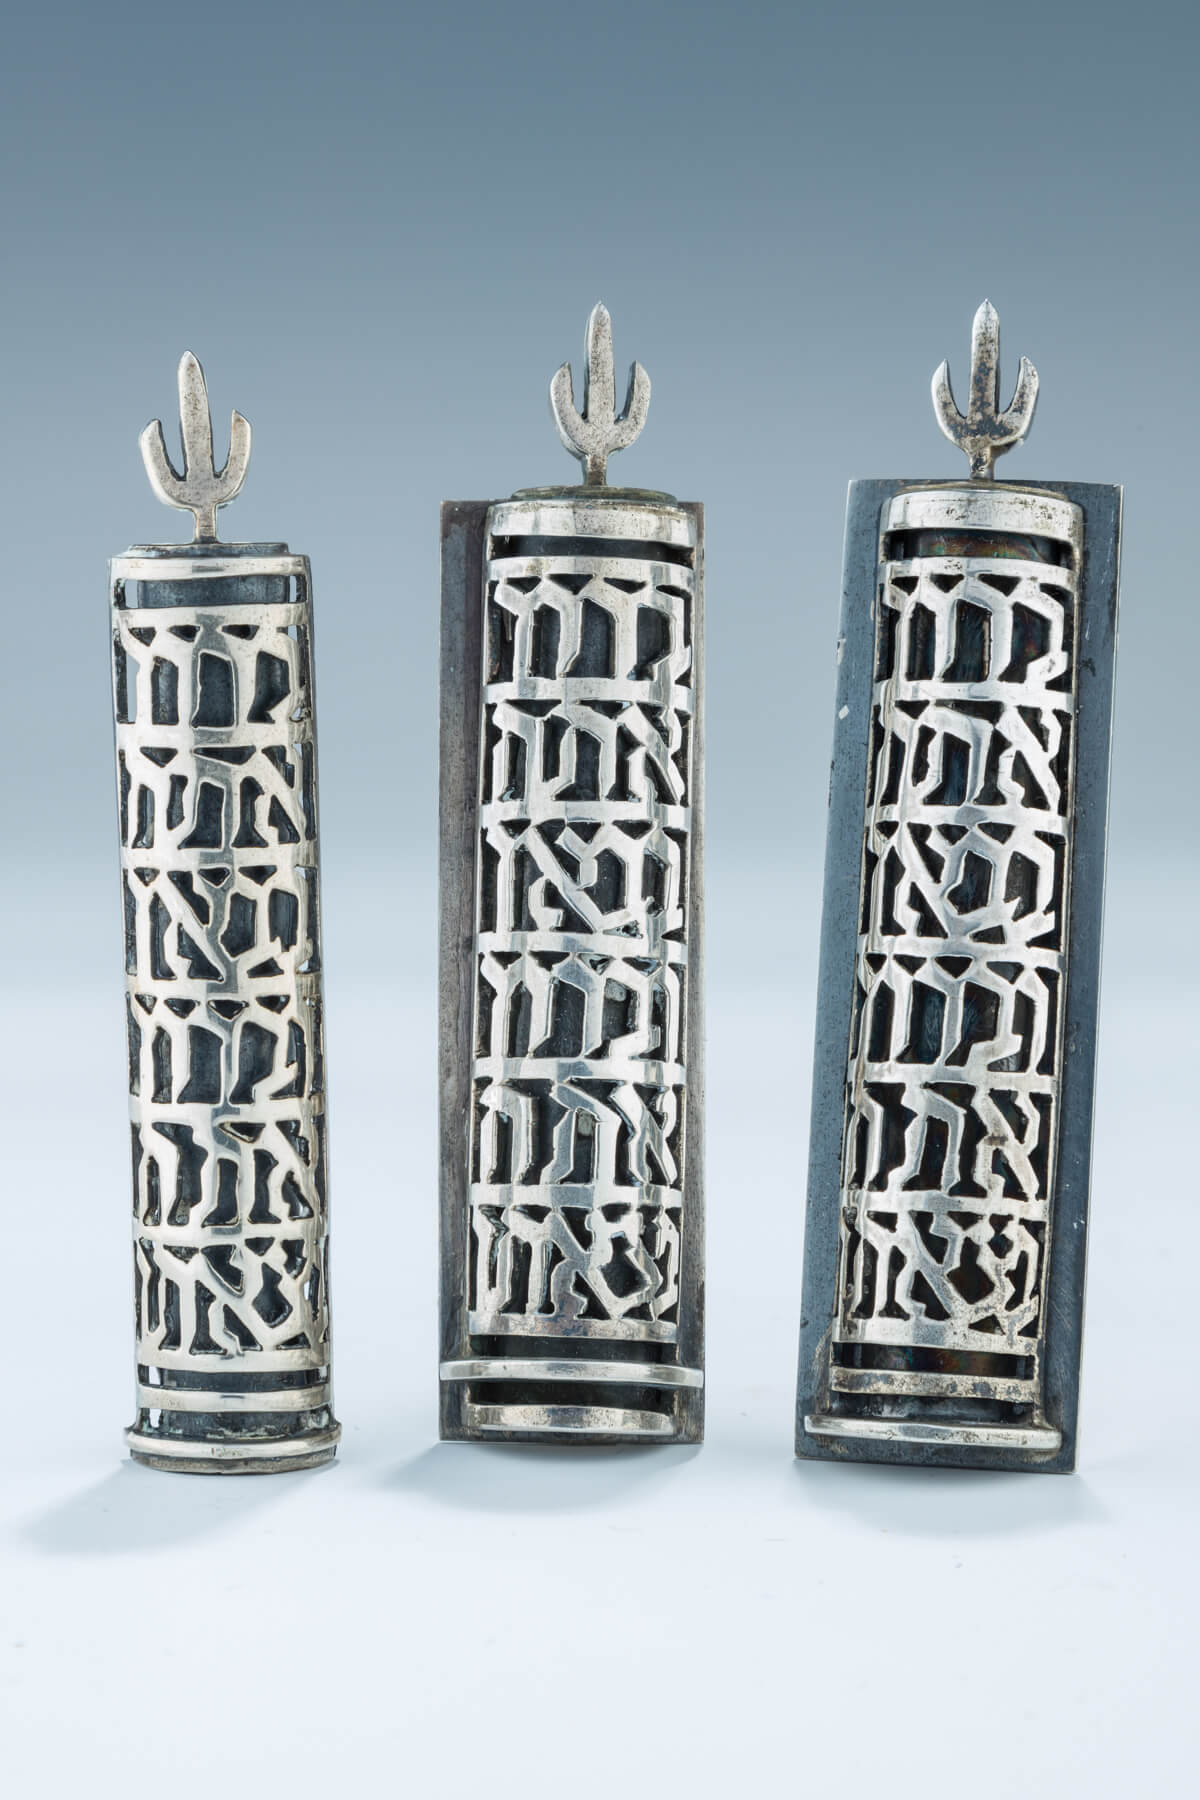 83. Three Sterling Silver Mezuzot By Ludwig Wolpert